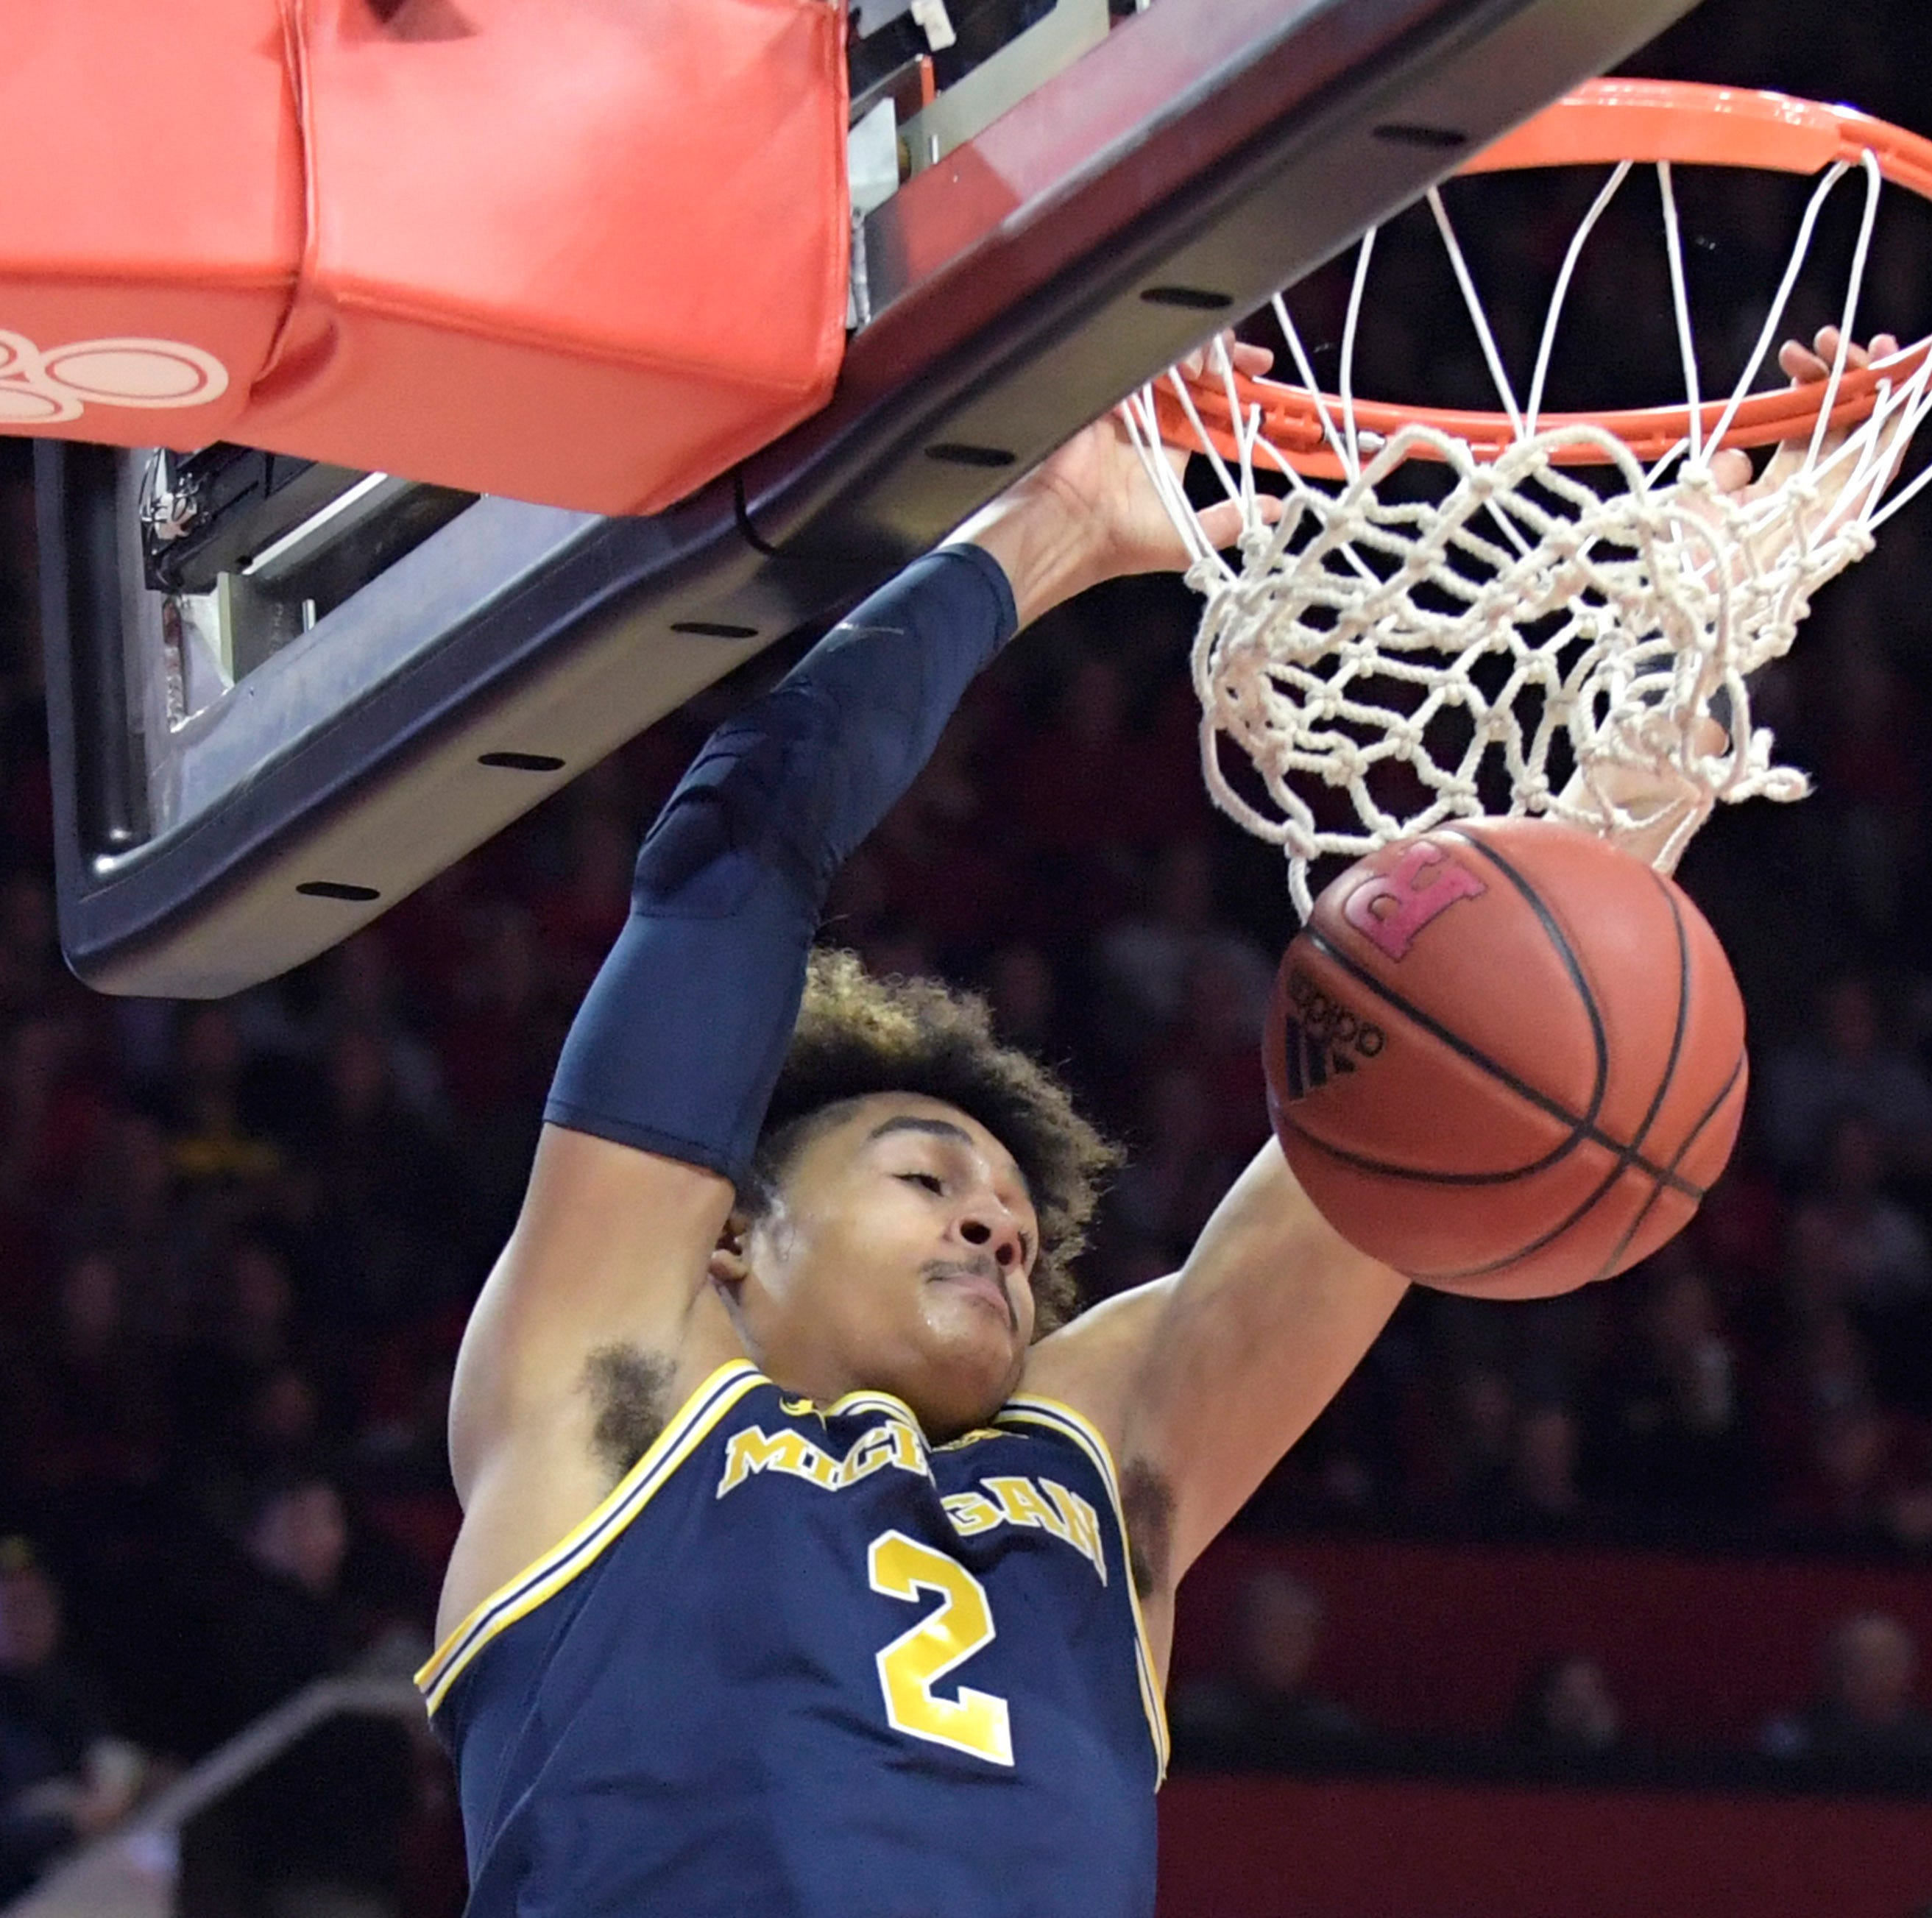 UM's Jordan Poole has his share of doubters, but Jalen Rose isn't one of them